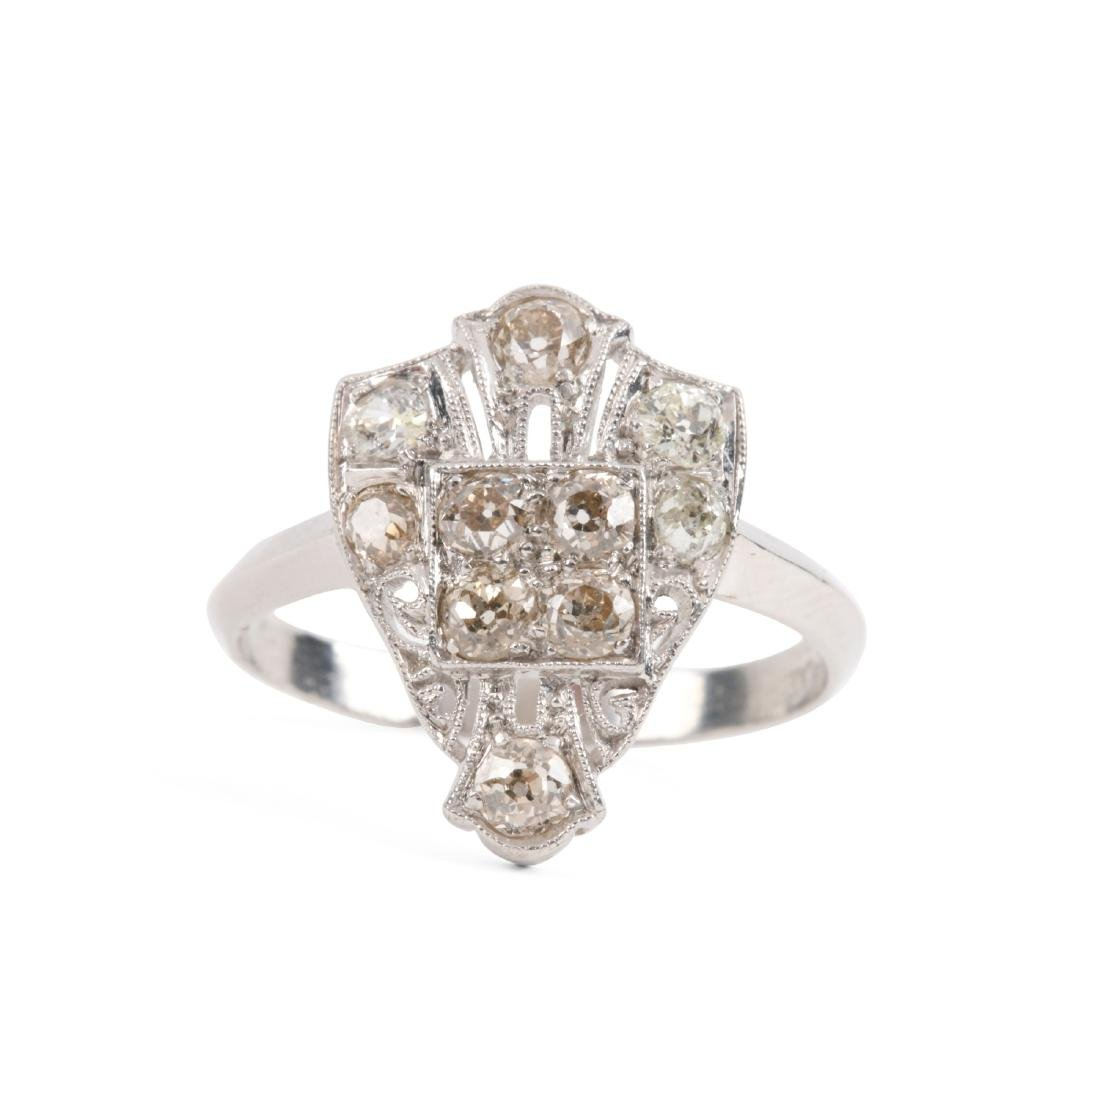 A Platinum & Old Mine Cut Diamond Ring